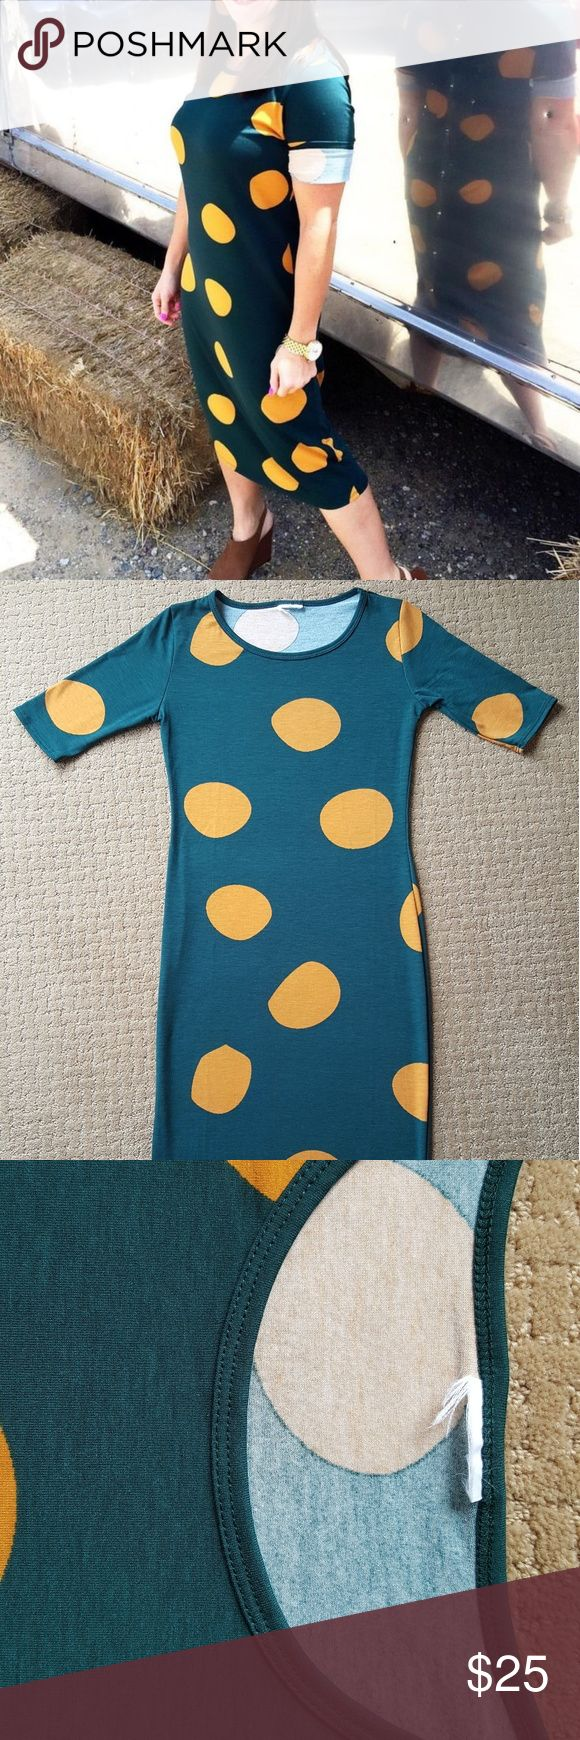 LuLaRoe Julia Dress Polka Dots Green Yellow Pretty LuLaRoe Julia dress in a dark green background with yellow mustard gold polka dot pattern size XXS - Extra Extra Small. This is like a fitted shirt and Cassie pencil skirt combined into one! Perfect to ad